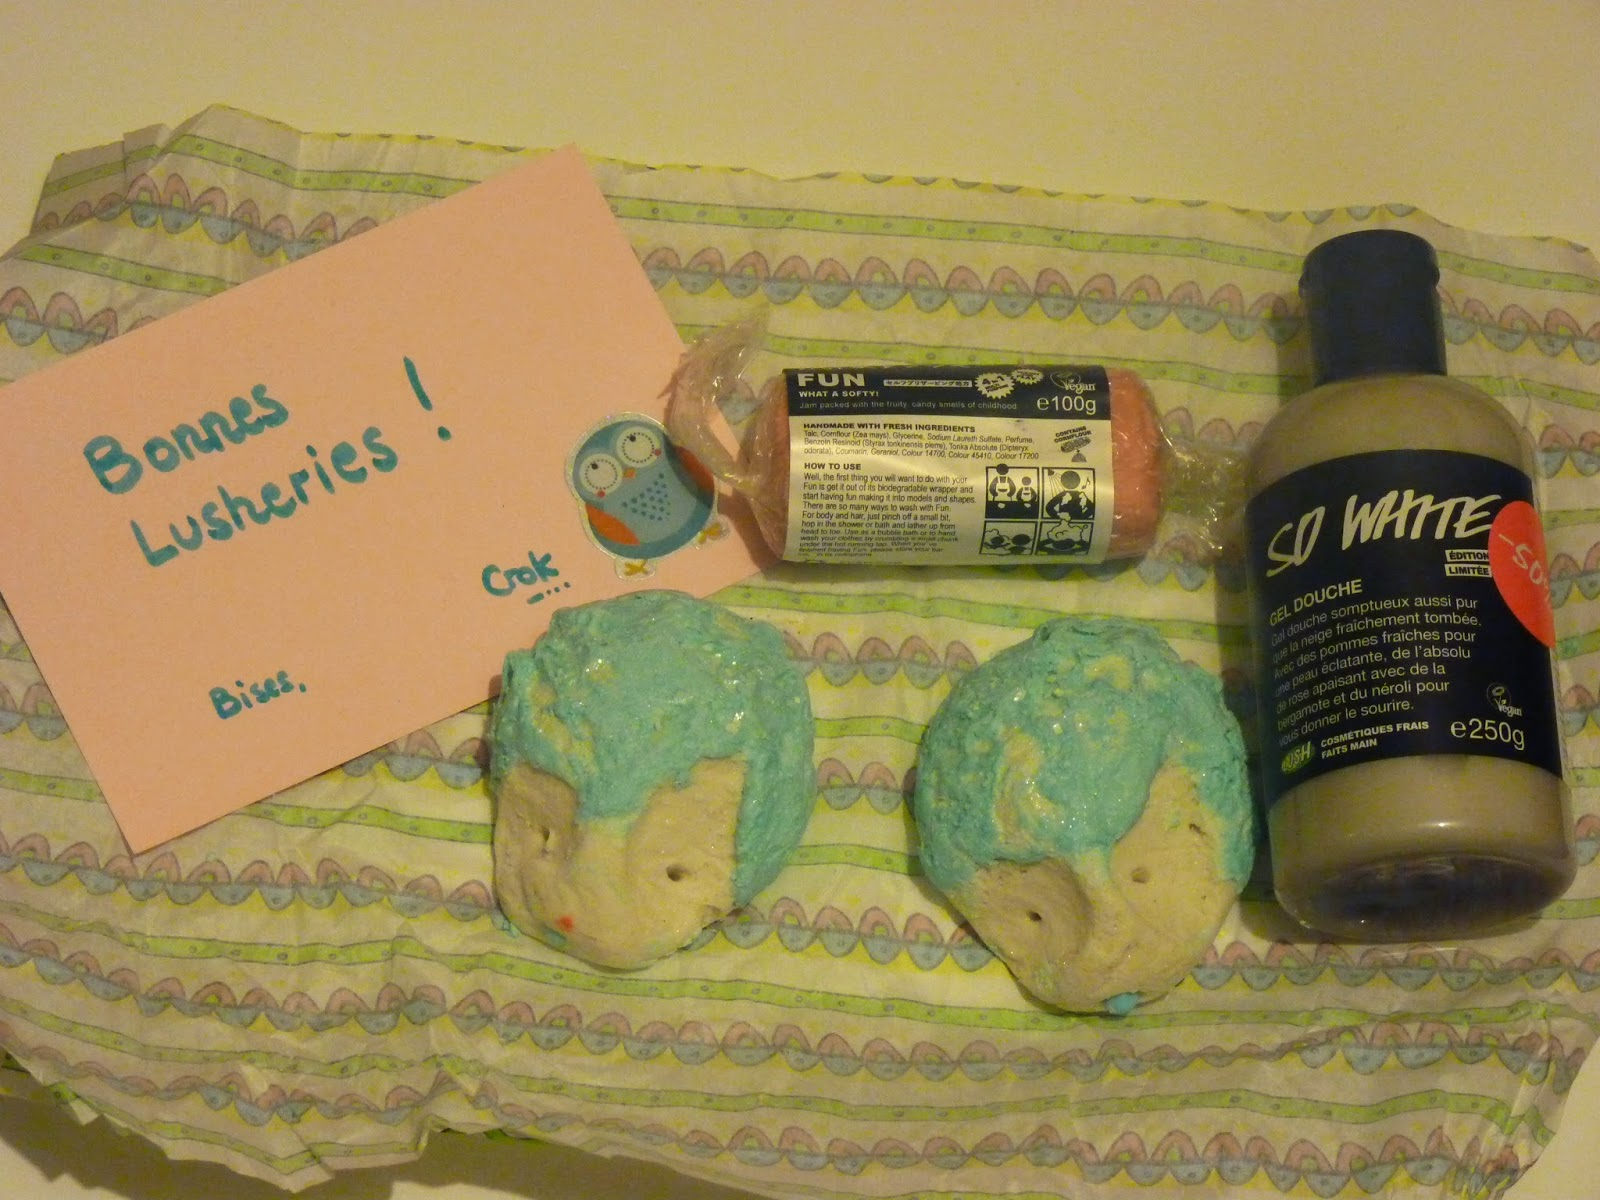 lush, soldes, commande, haul, crok, forum swap, la bouteille, christmas hedgehog, so white, snow angel, fun rose, fondant bain, gel douche,